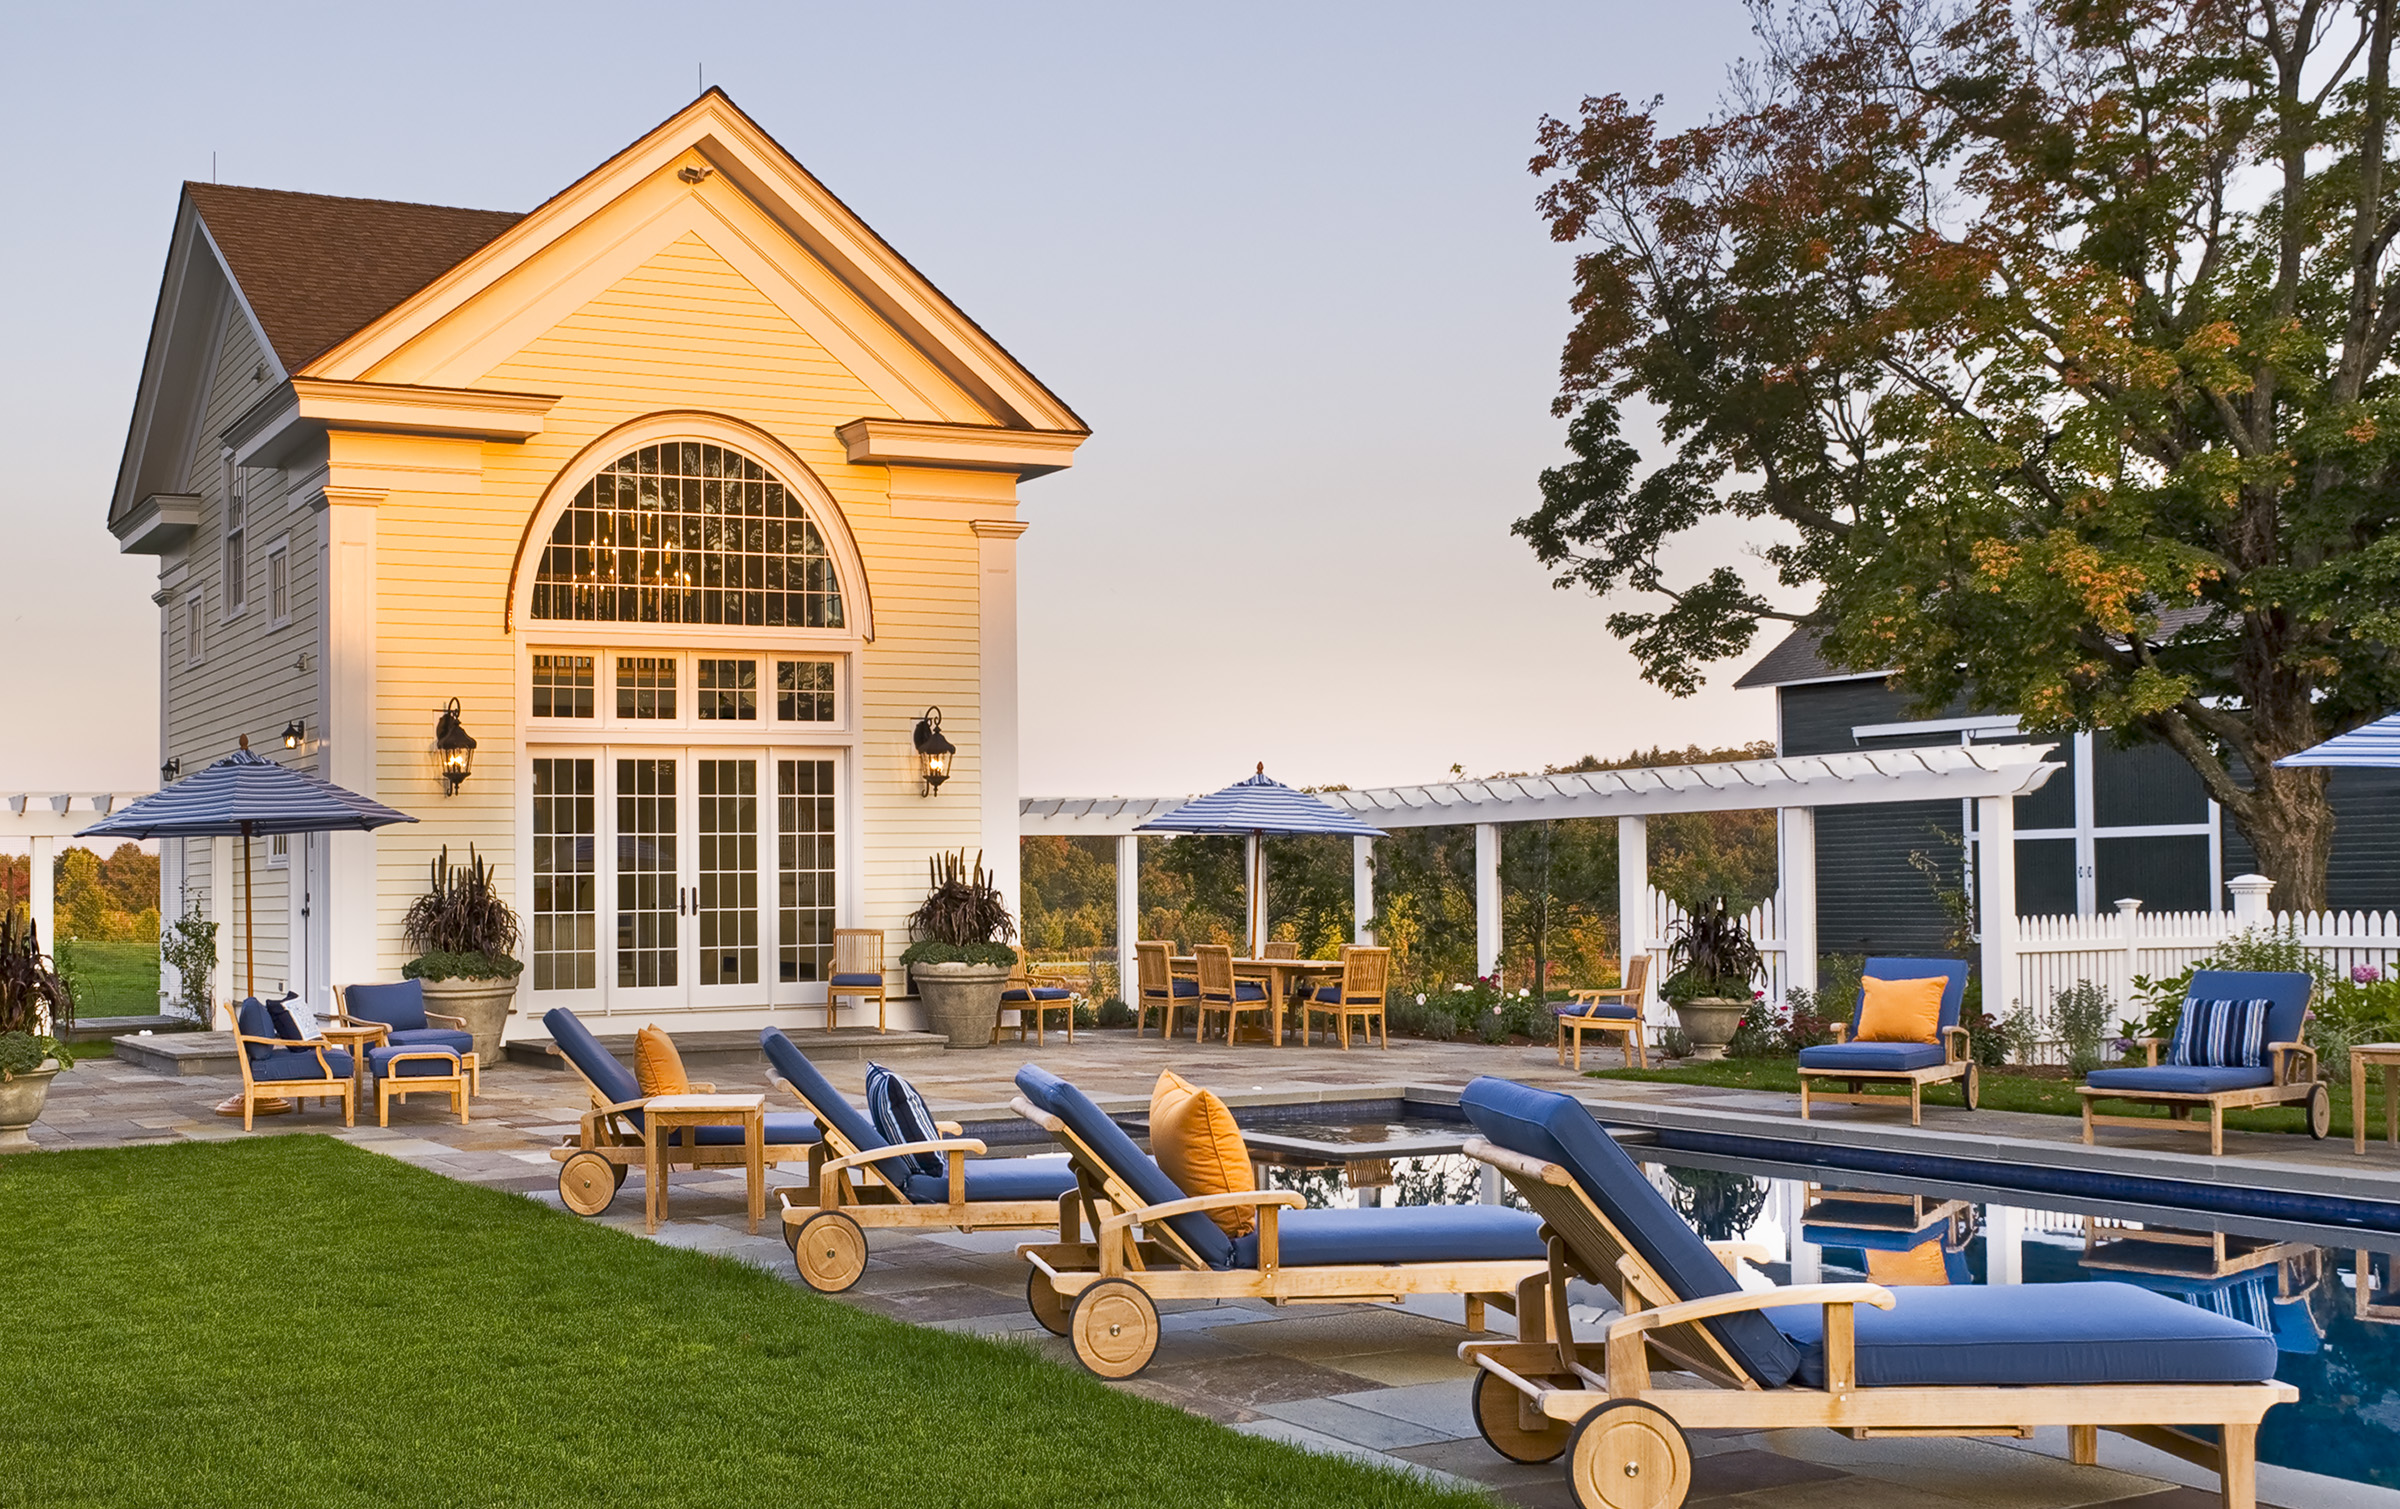 Pool House at Sunset